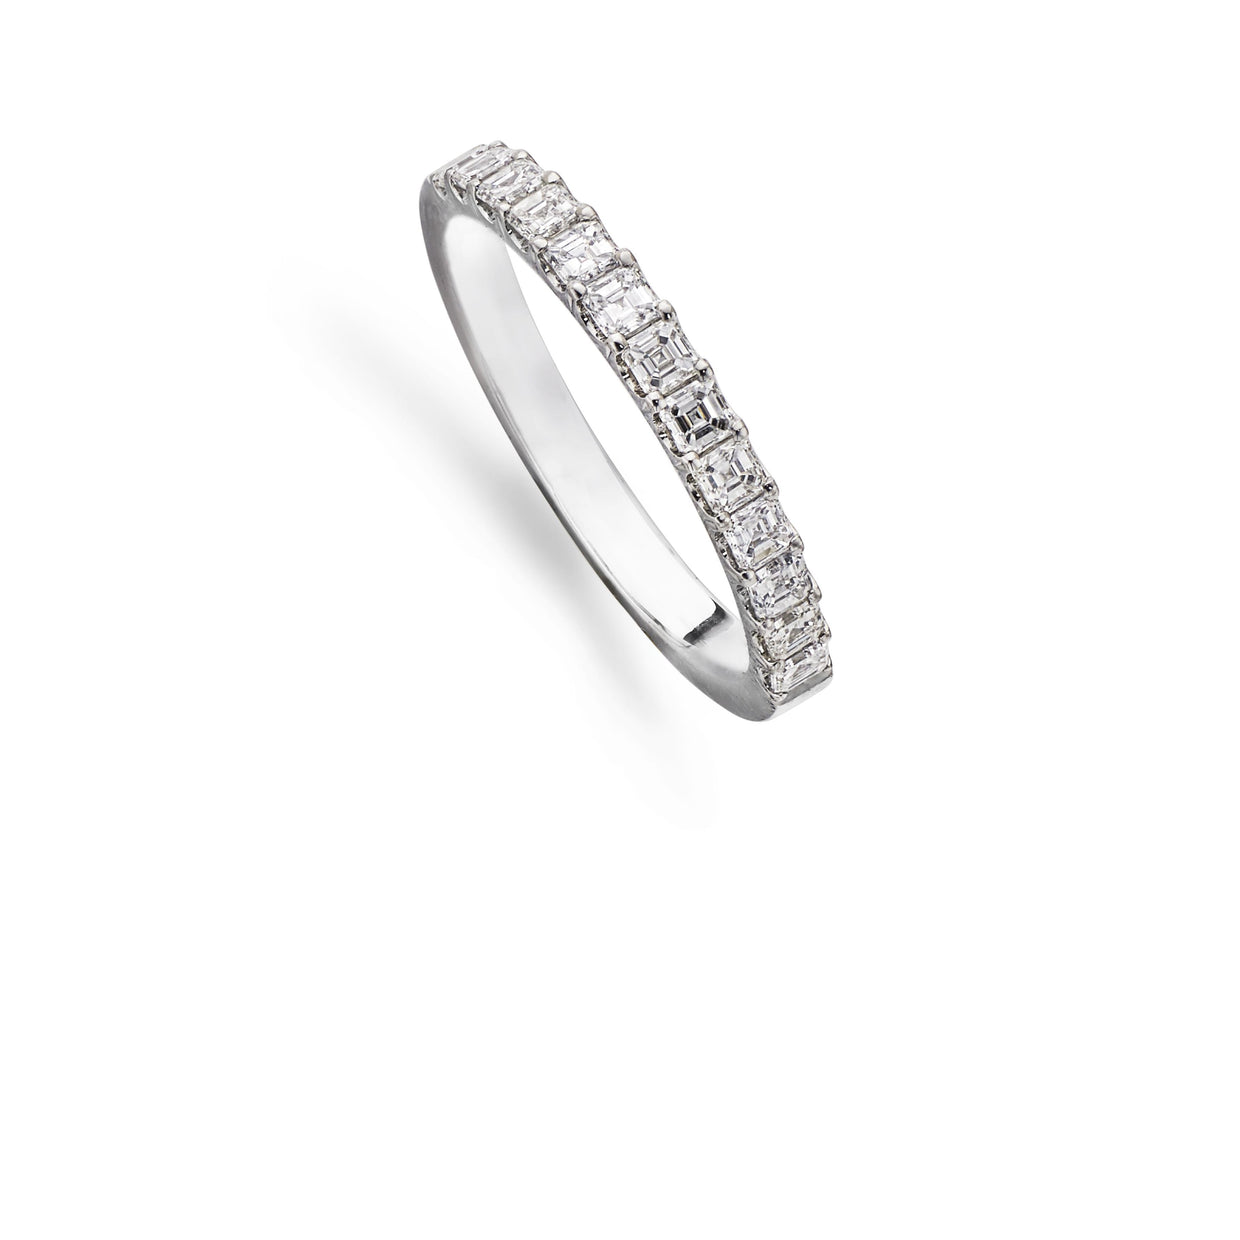 13 Emerald Cut Diamond 1/2 Eternity Ring in Platinum-Hamilton & Inches